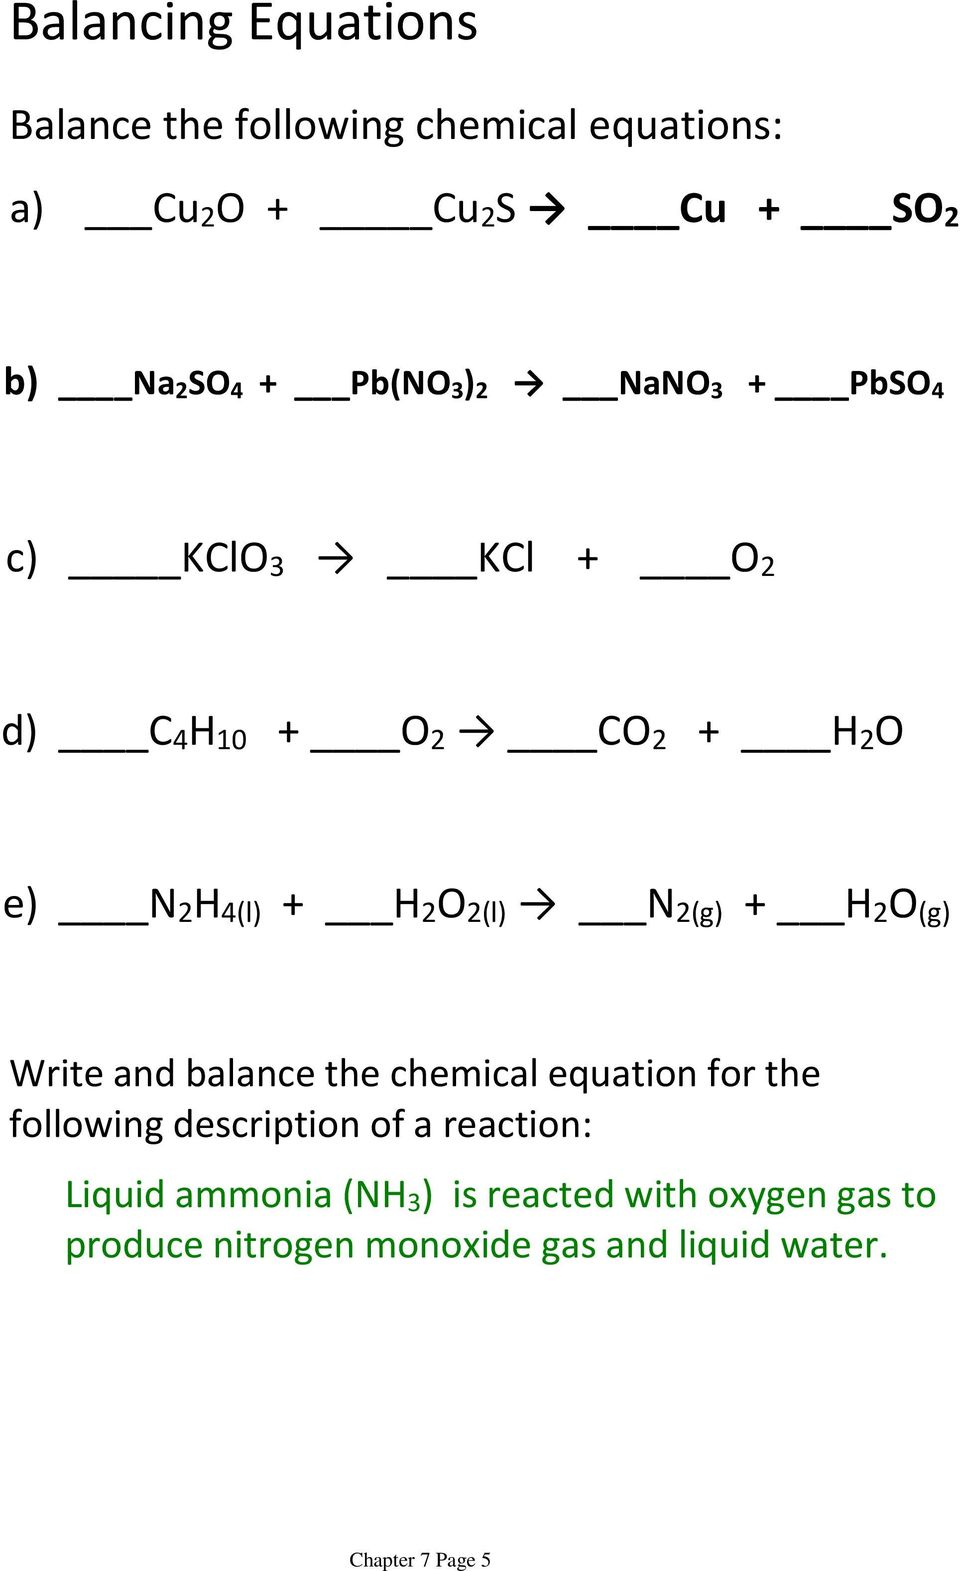 hight resolution of Chapter 7: Chemical Reactions - PDF Free Download